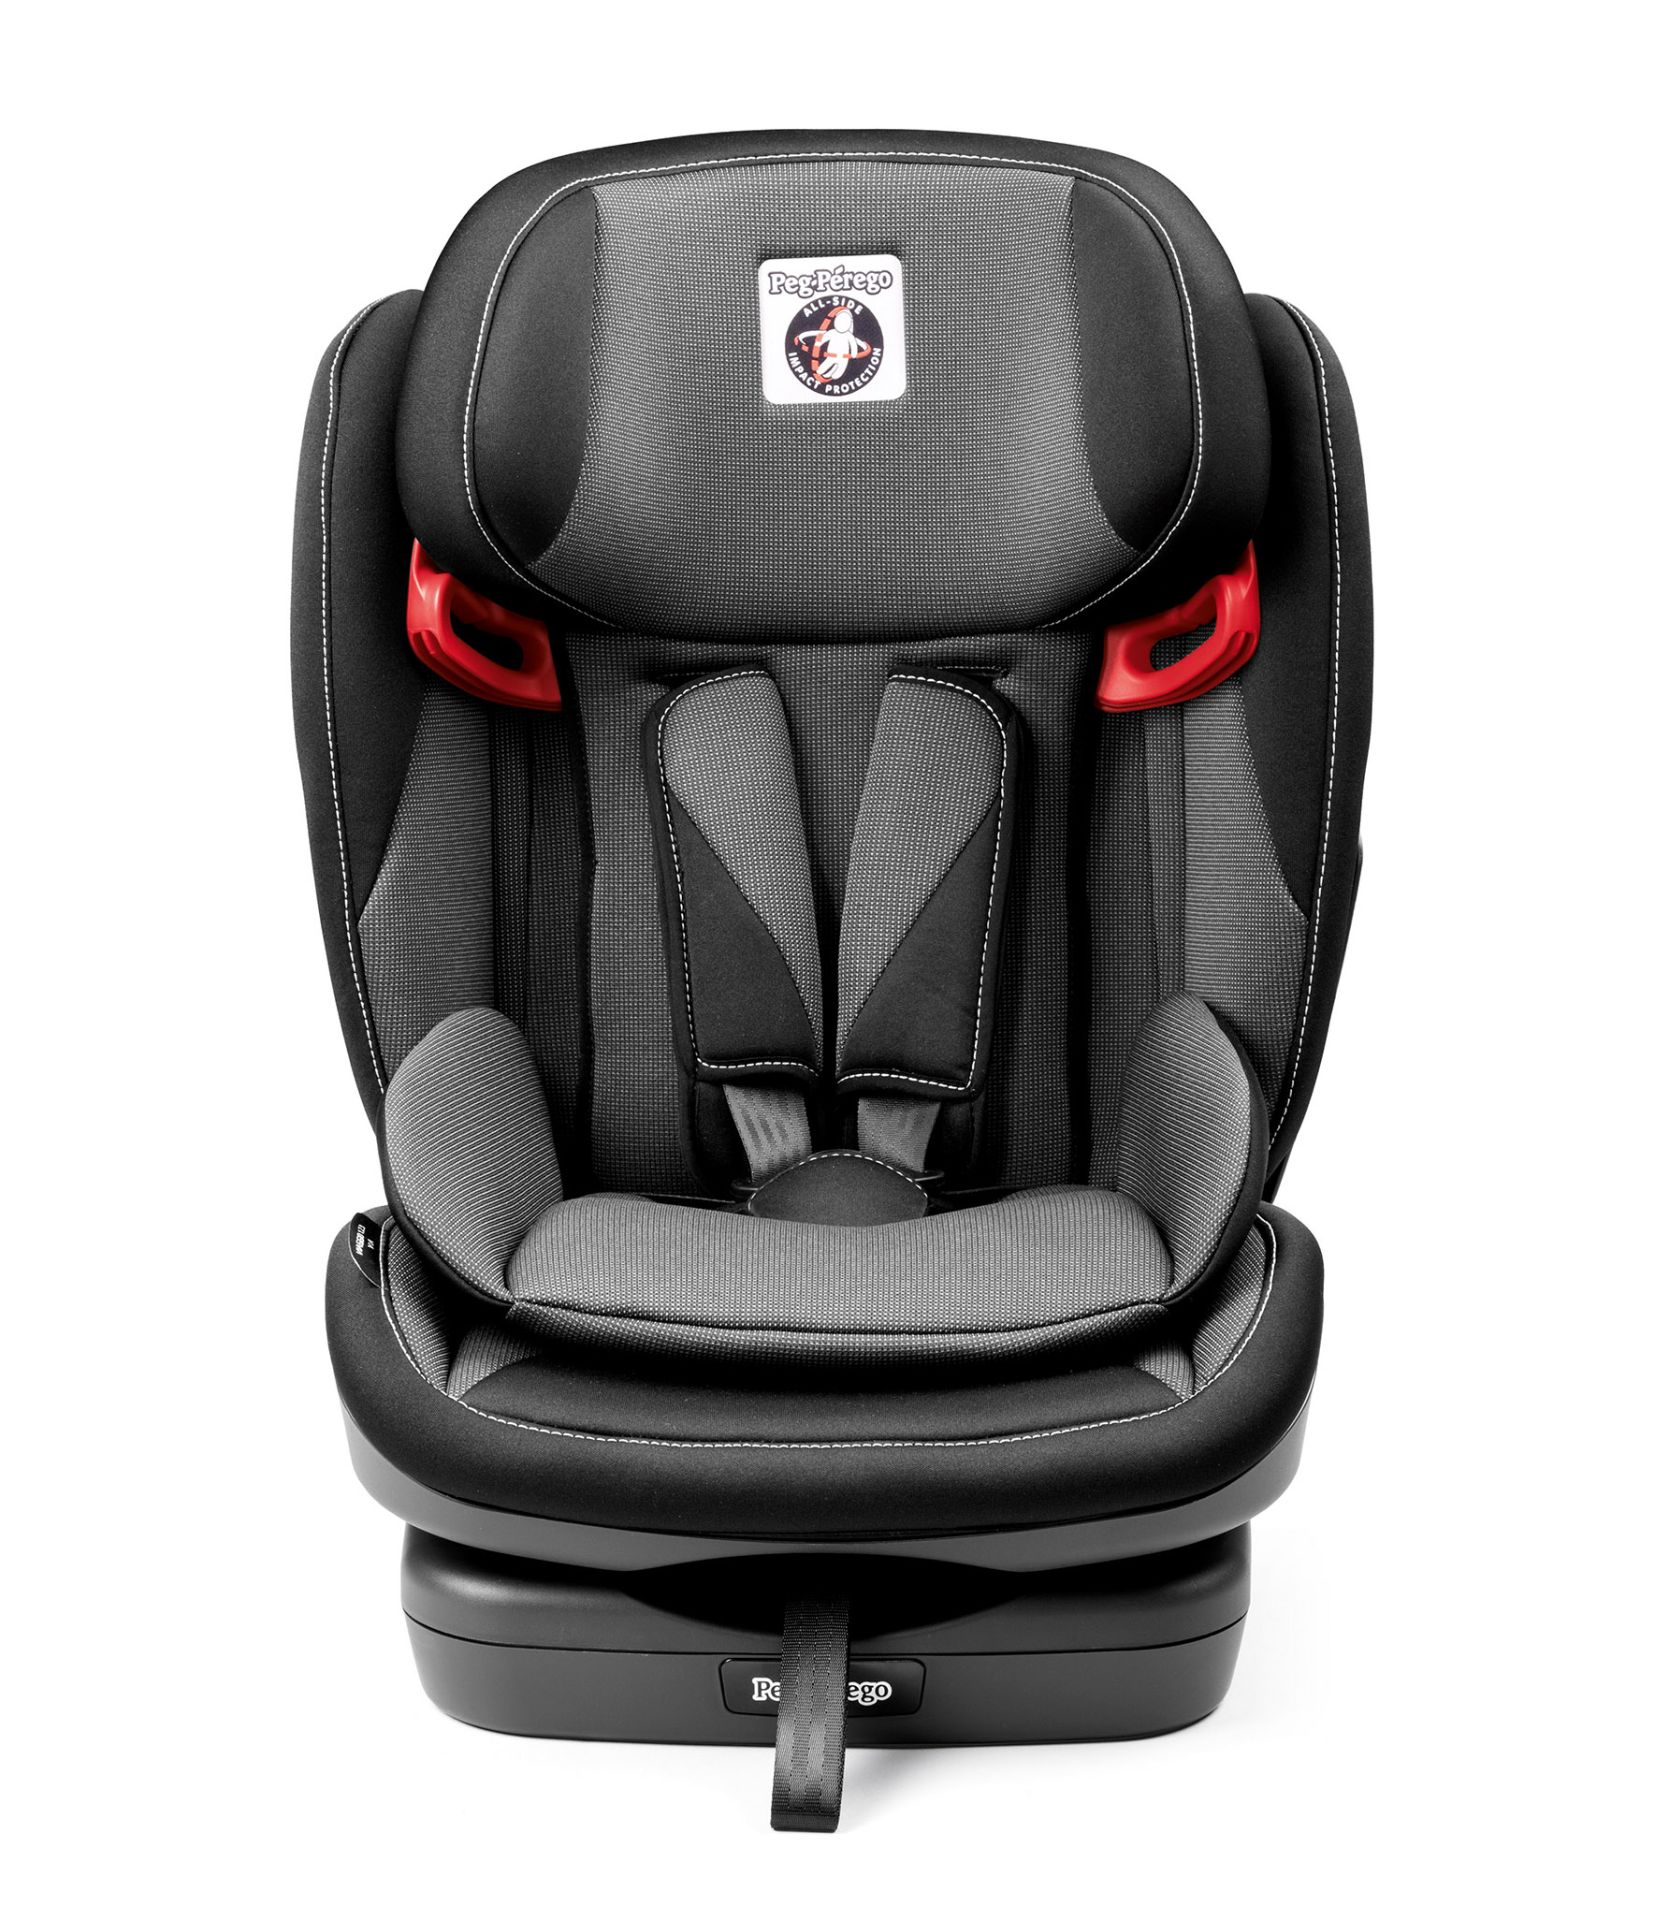 peg perego car seat viaggio 1 2 3 via 2018 crystal black buy at kidsroom car seats. Black Bedroom Furniture Sets. Home Design Ideas